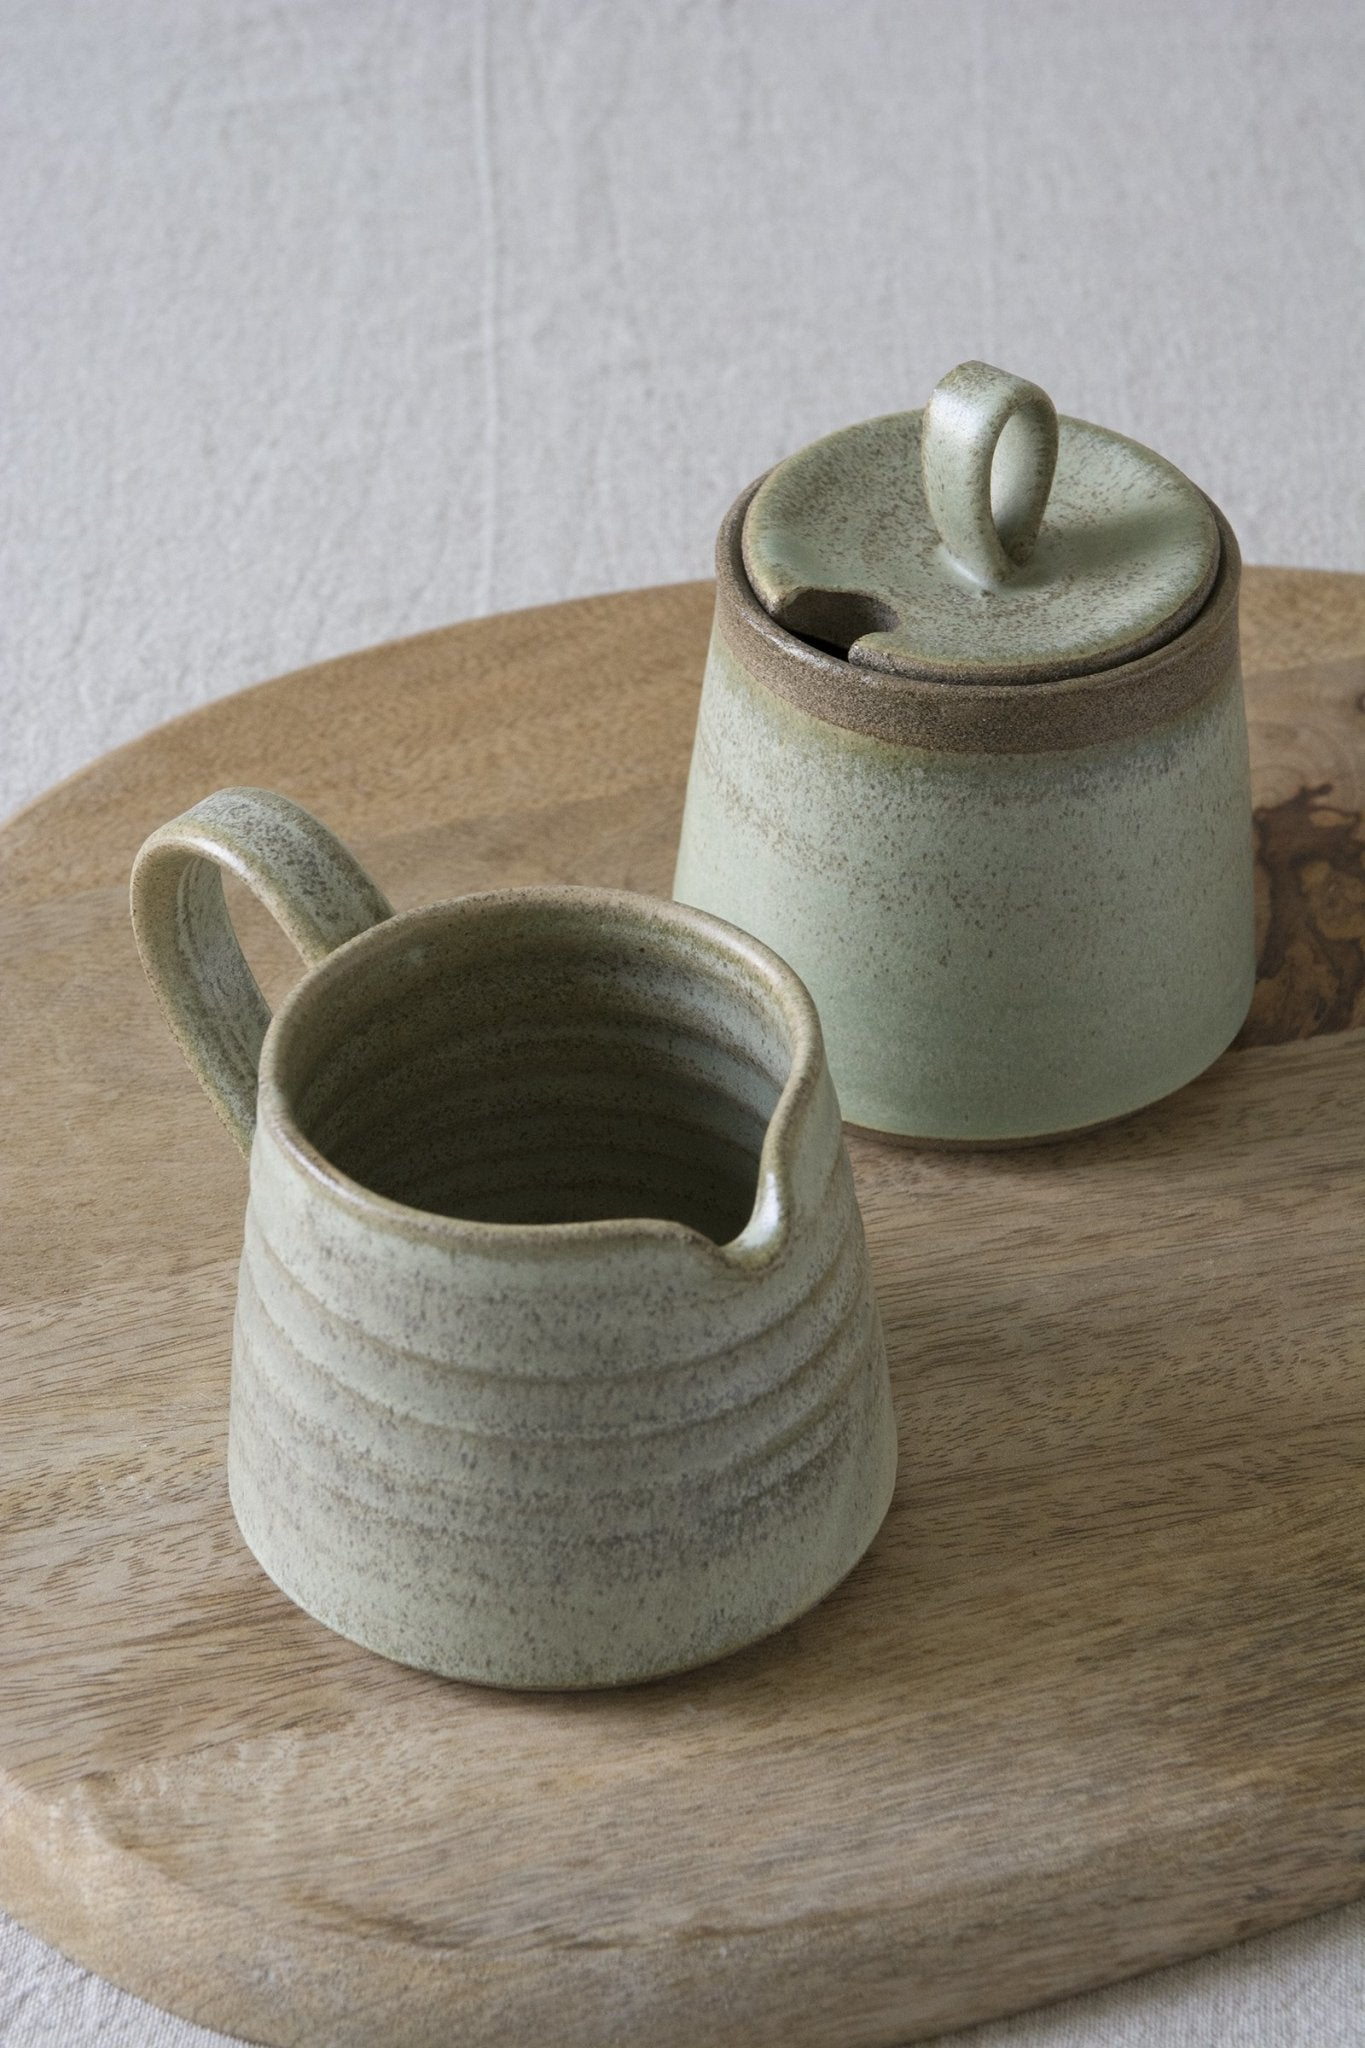 Green Sage Pottery Sugar Bowl and Creamer Set - Mad About Pottery - Sugar Bowl set